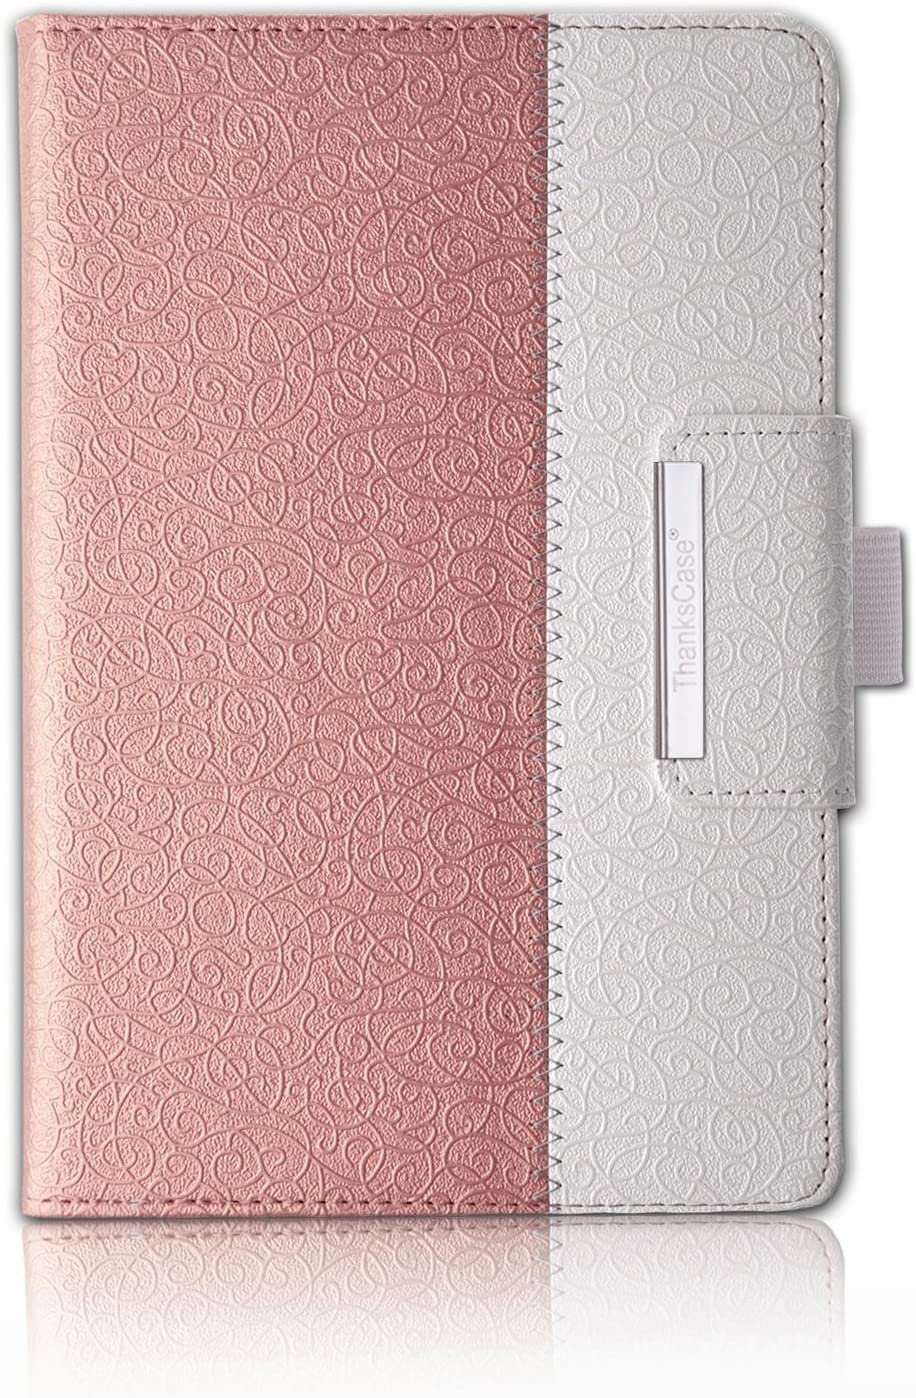 "Thankscase Case for iPad Air 10.5"" (3rd Gen) / iPad Pro 10.5, Rotating Case Stand Cover with Pencil Holder, Swivel Case Bulid-in Wallet Pocket, Hand Strap for iPad Air 3rd Gen 10.5"" 2019(Rose Gold)"